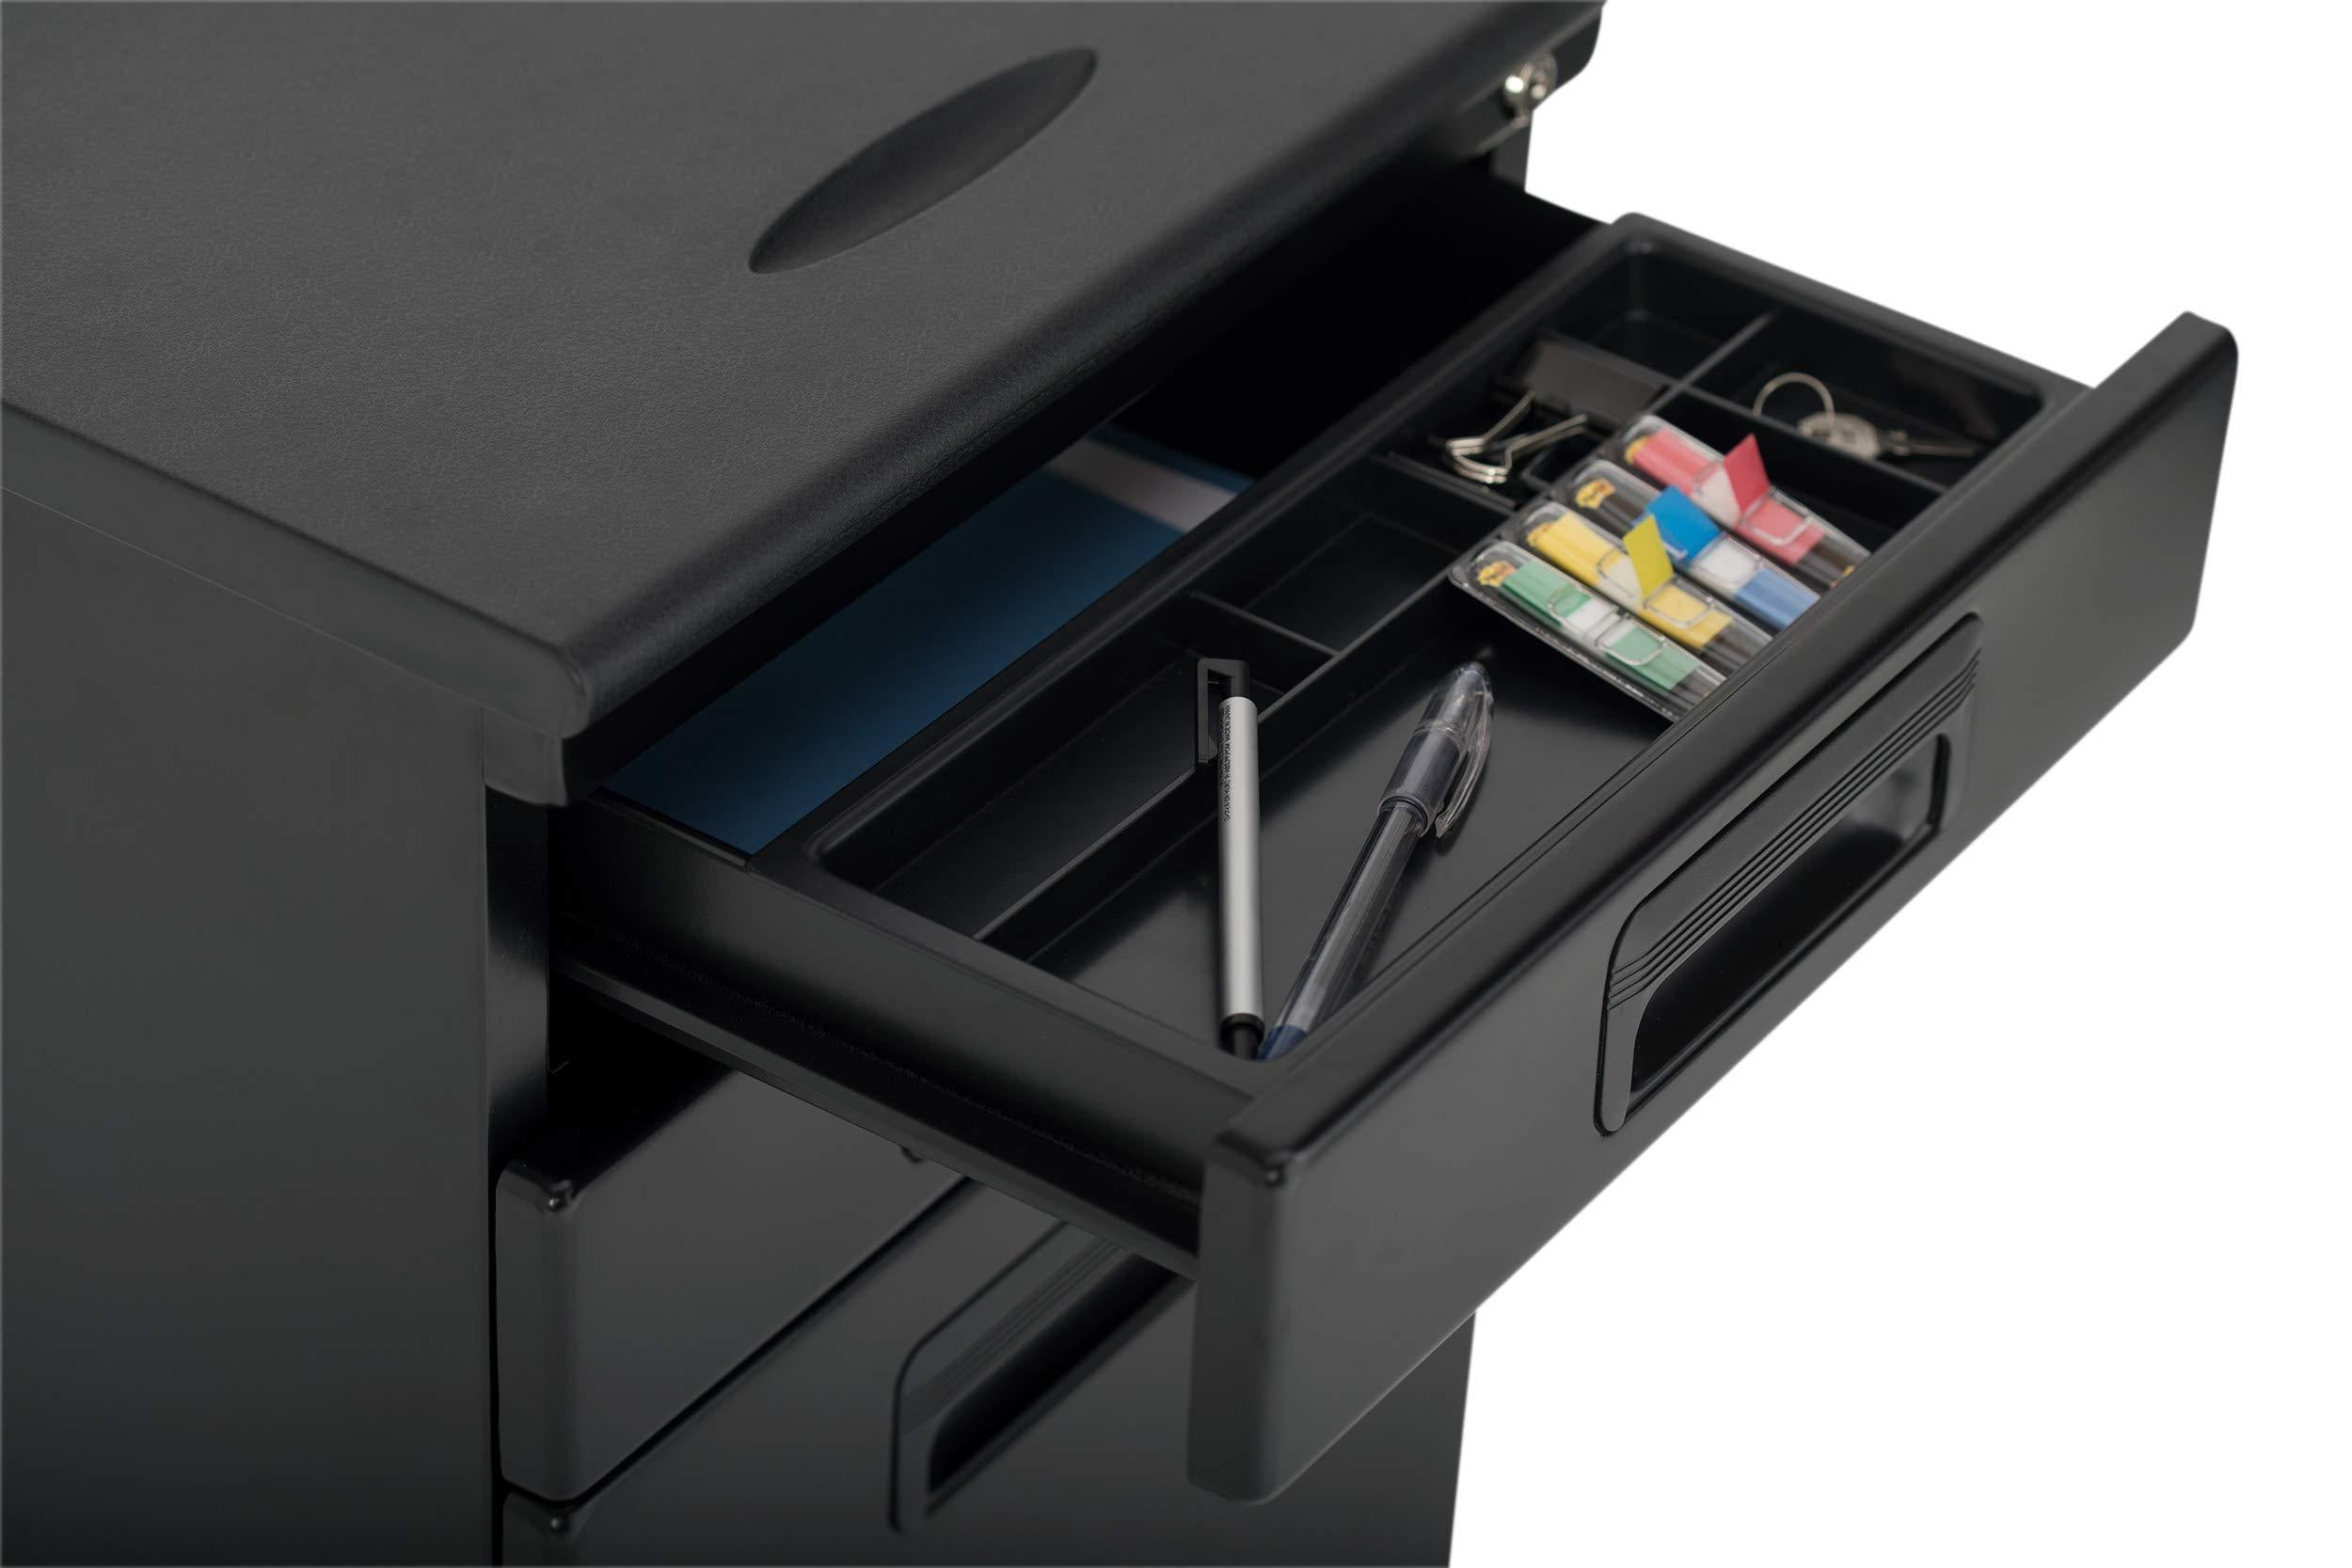 Get craft hobby essentials 62002 metal 3 vertical mobile filing cabinet 15 75 w x 22 d craft supply storage with locking drawers in black